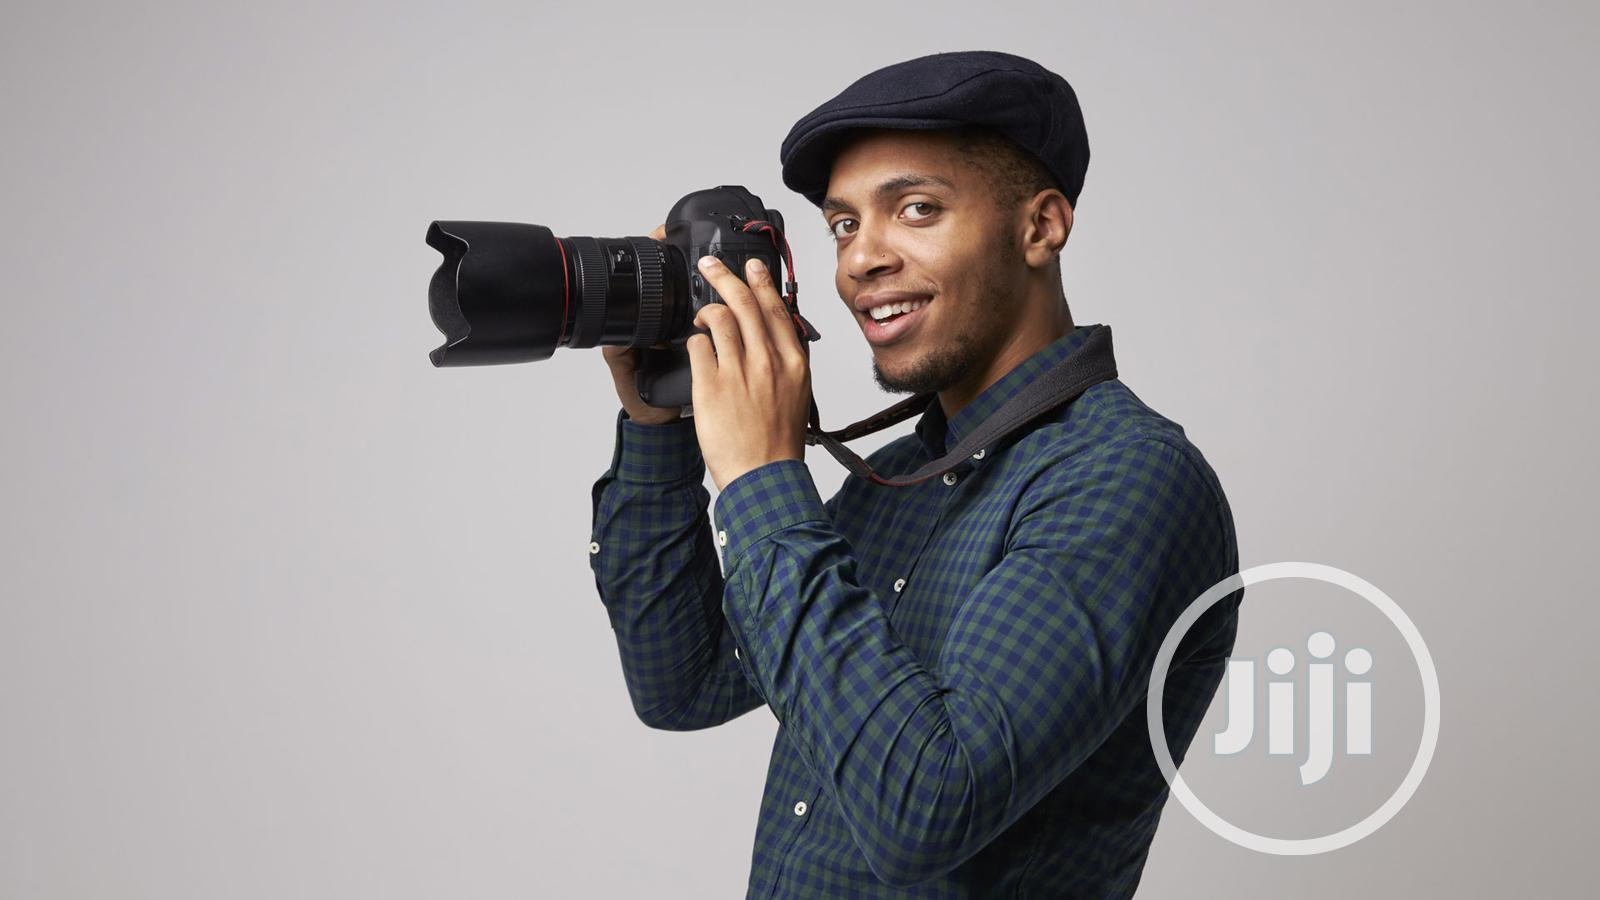 Archive: A Professional Photographer Needed